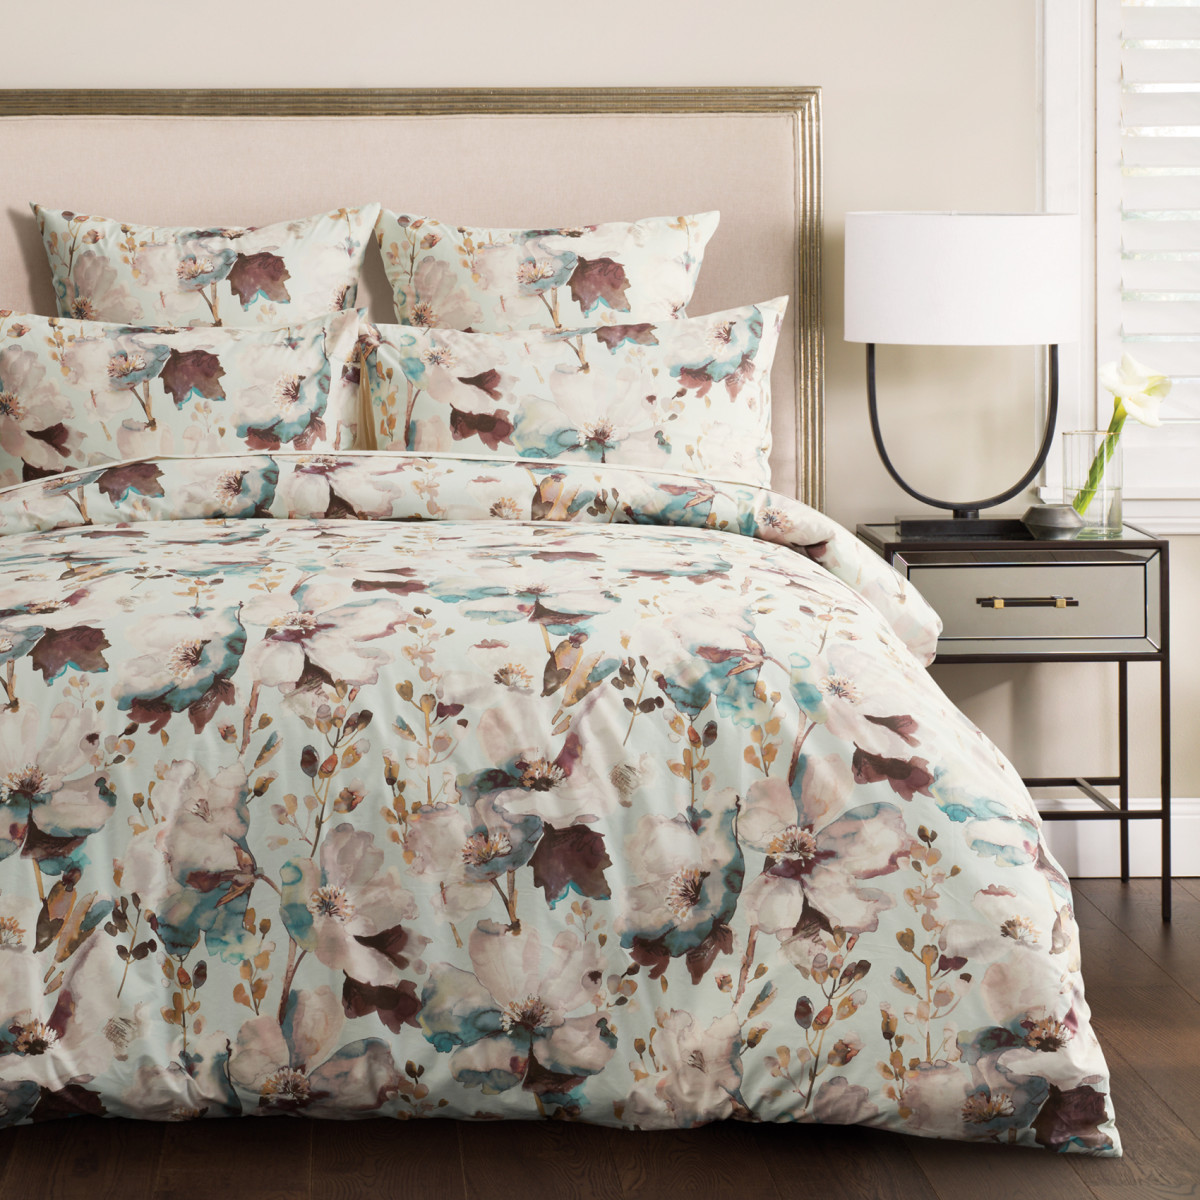 Sheridan Aria Quilt Cover Set - Blue